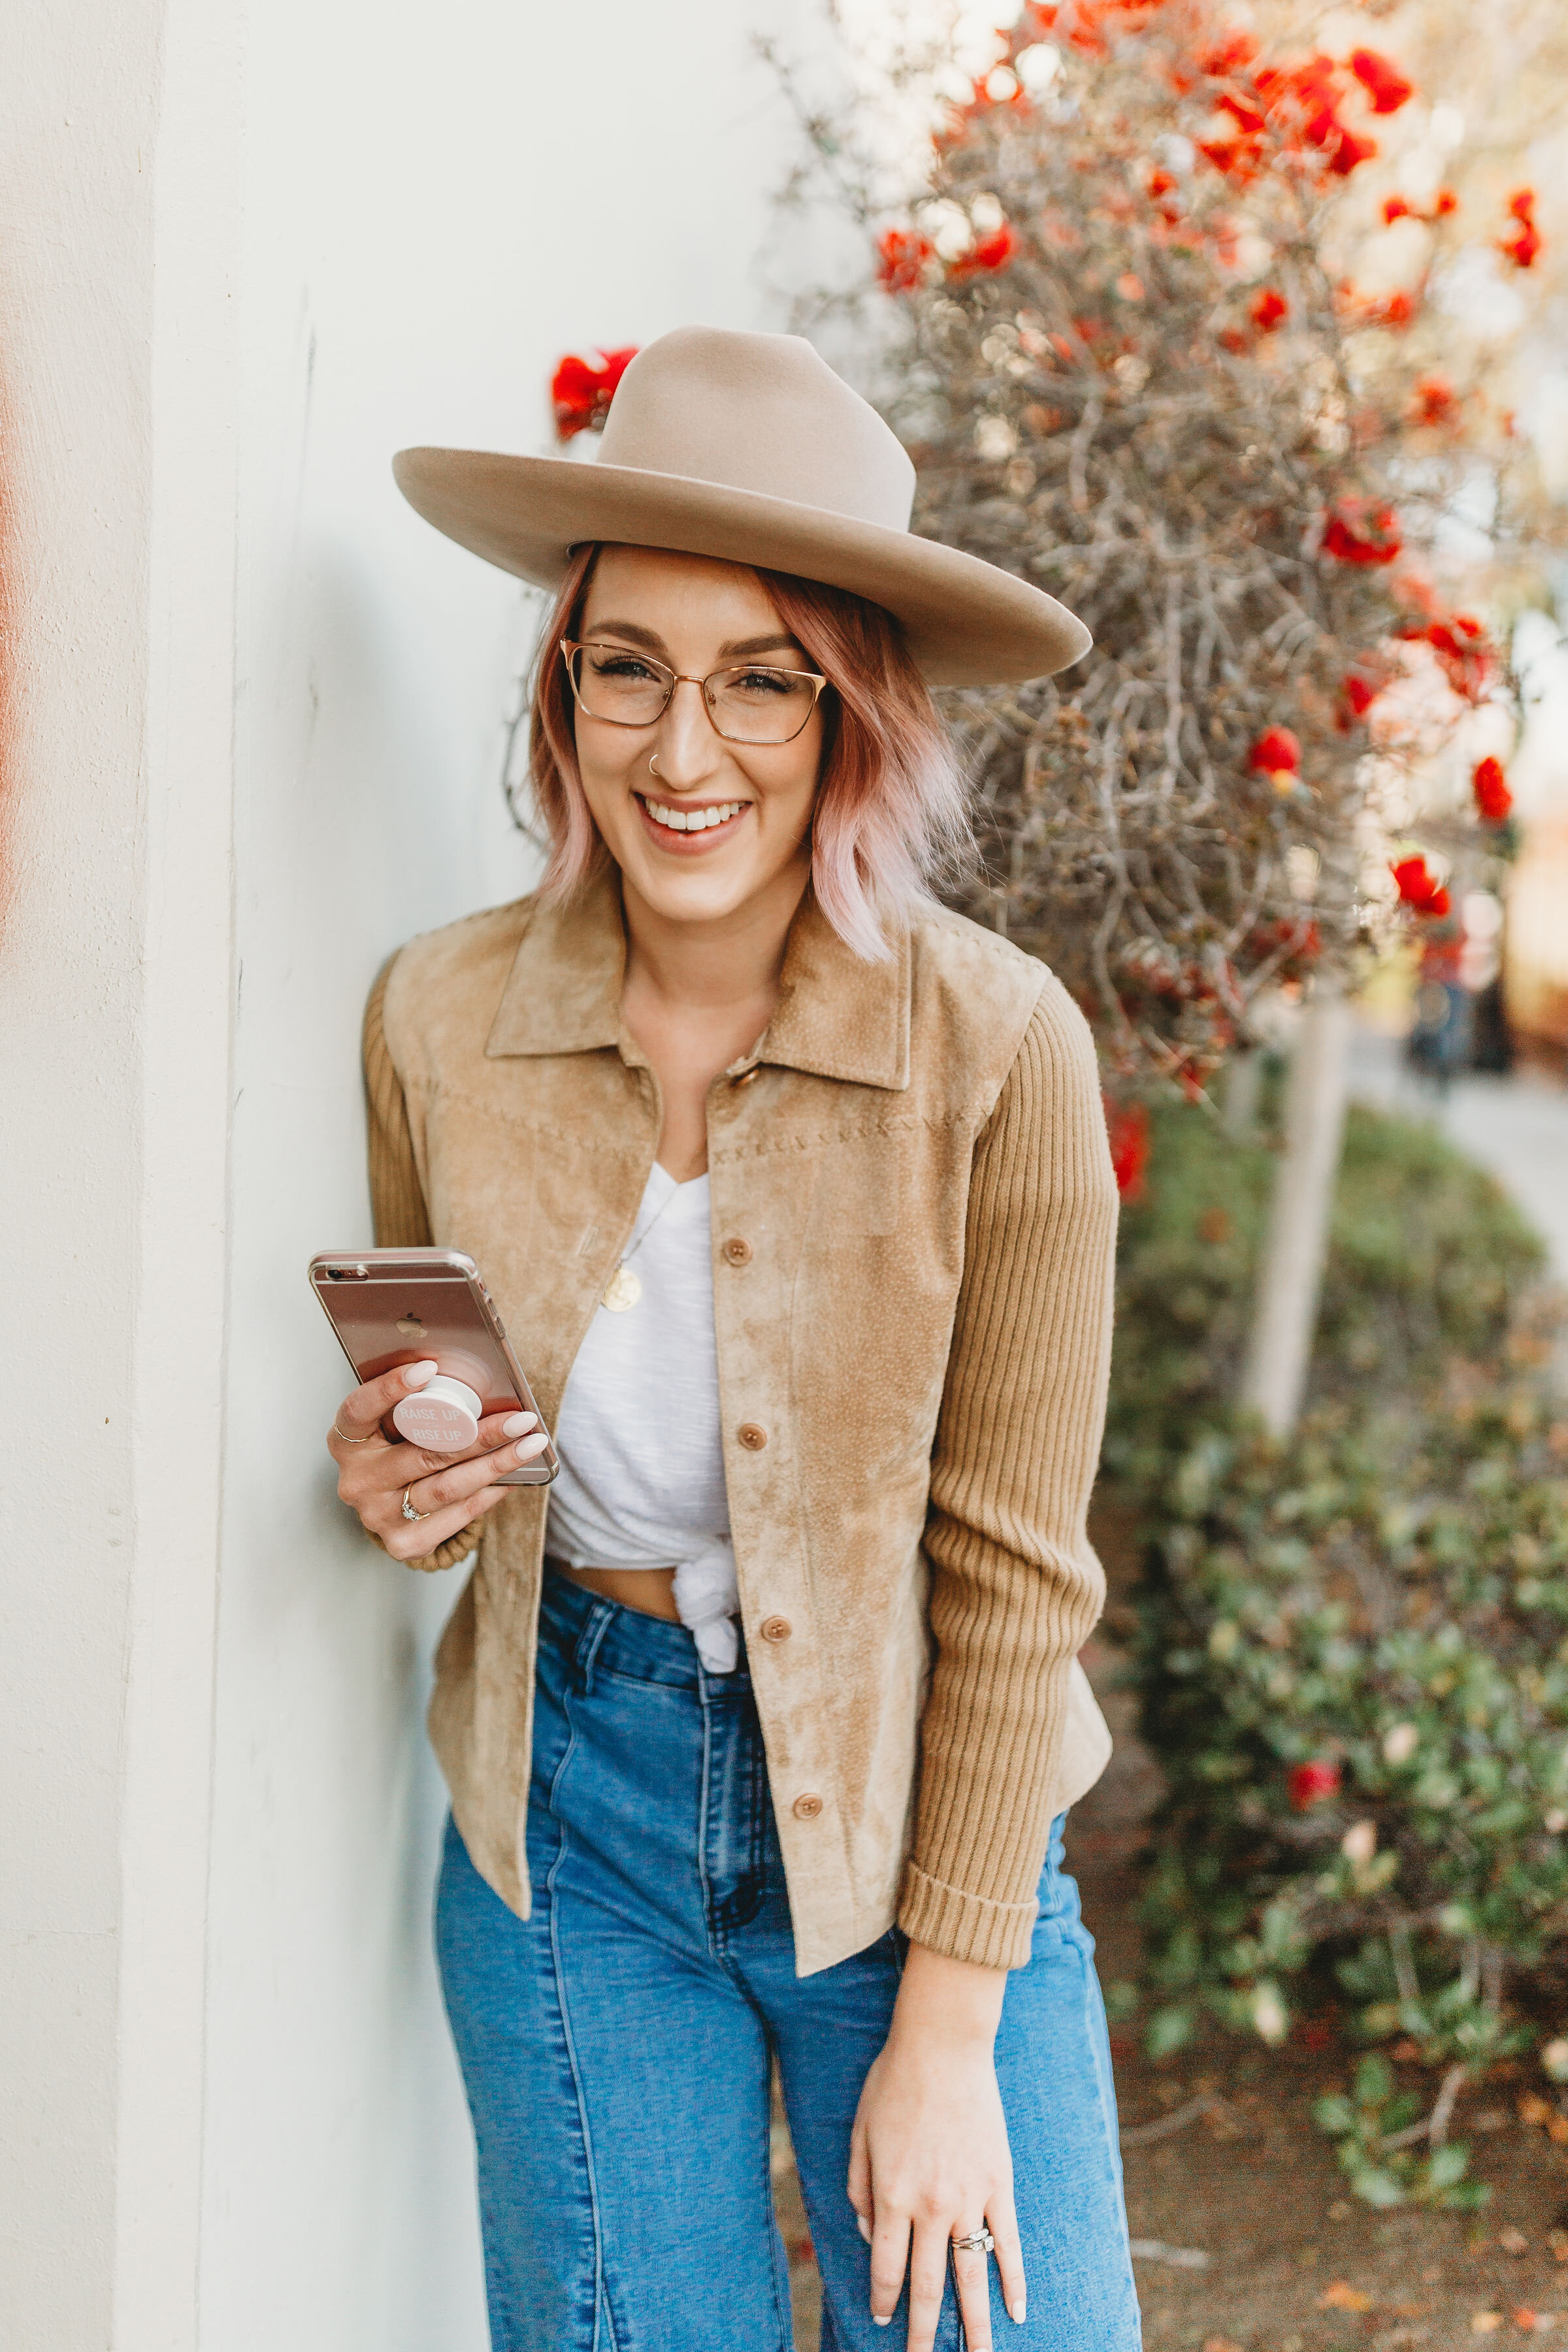 Jamie dana - How to stand out from everyone else on Instagram